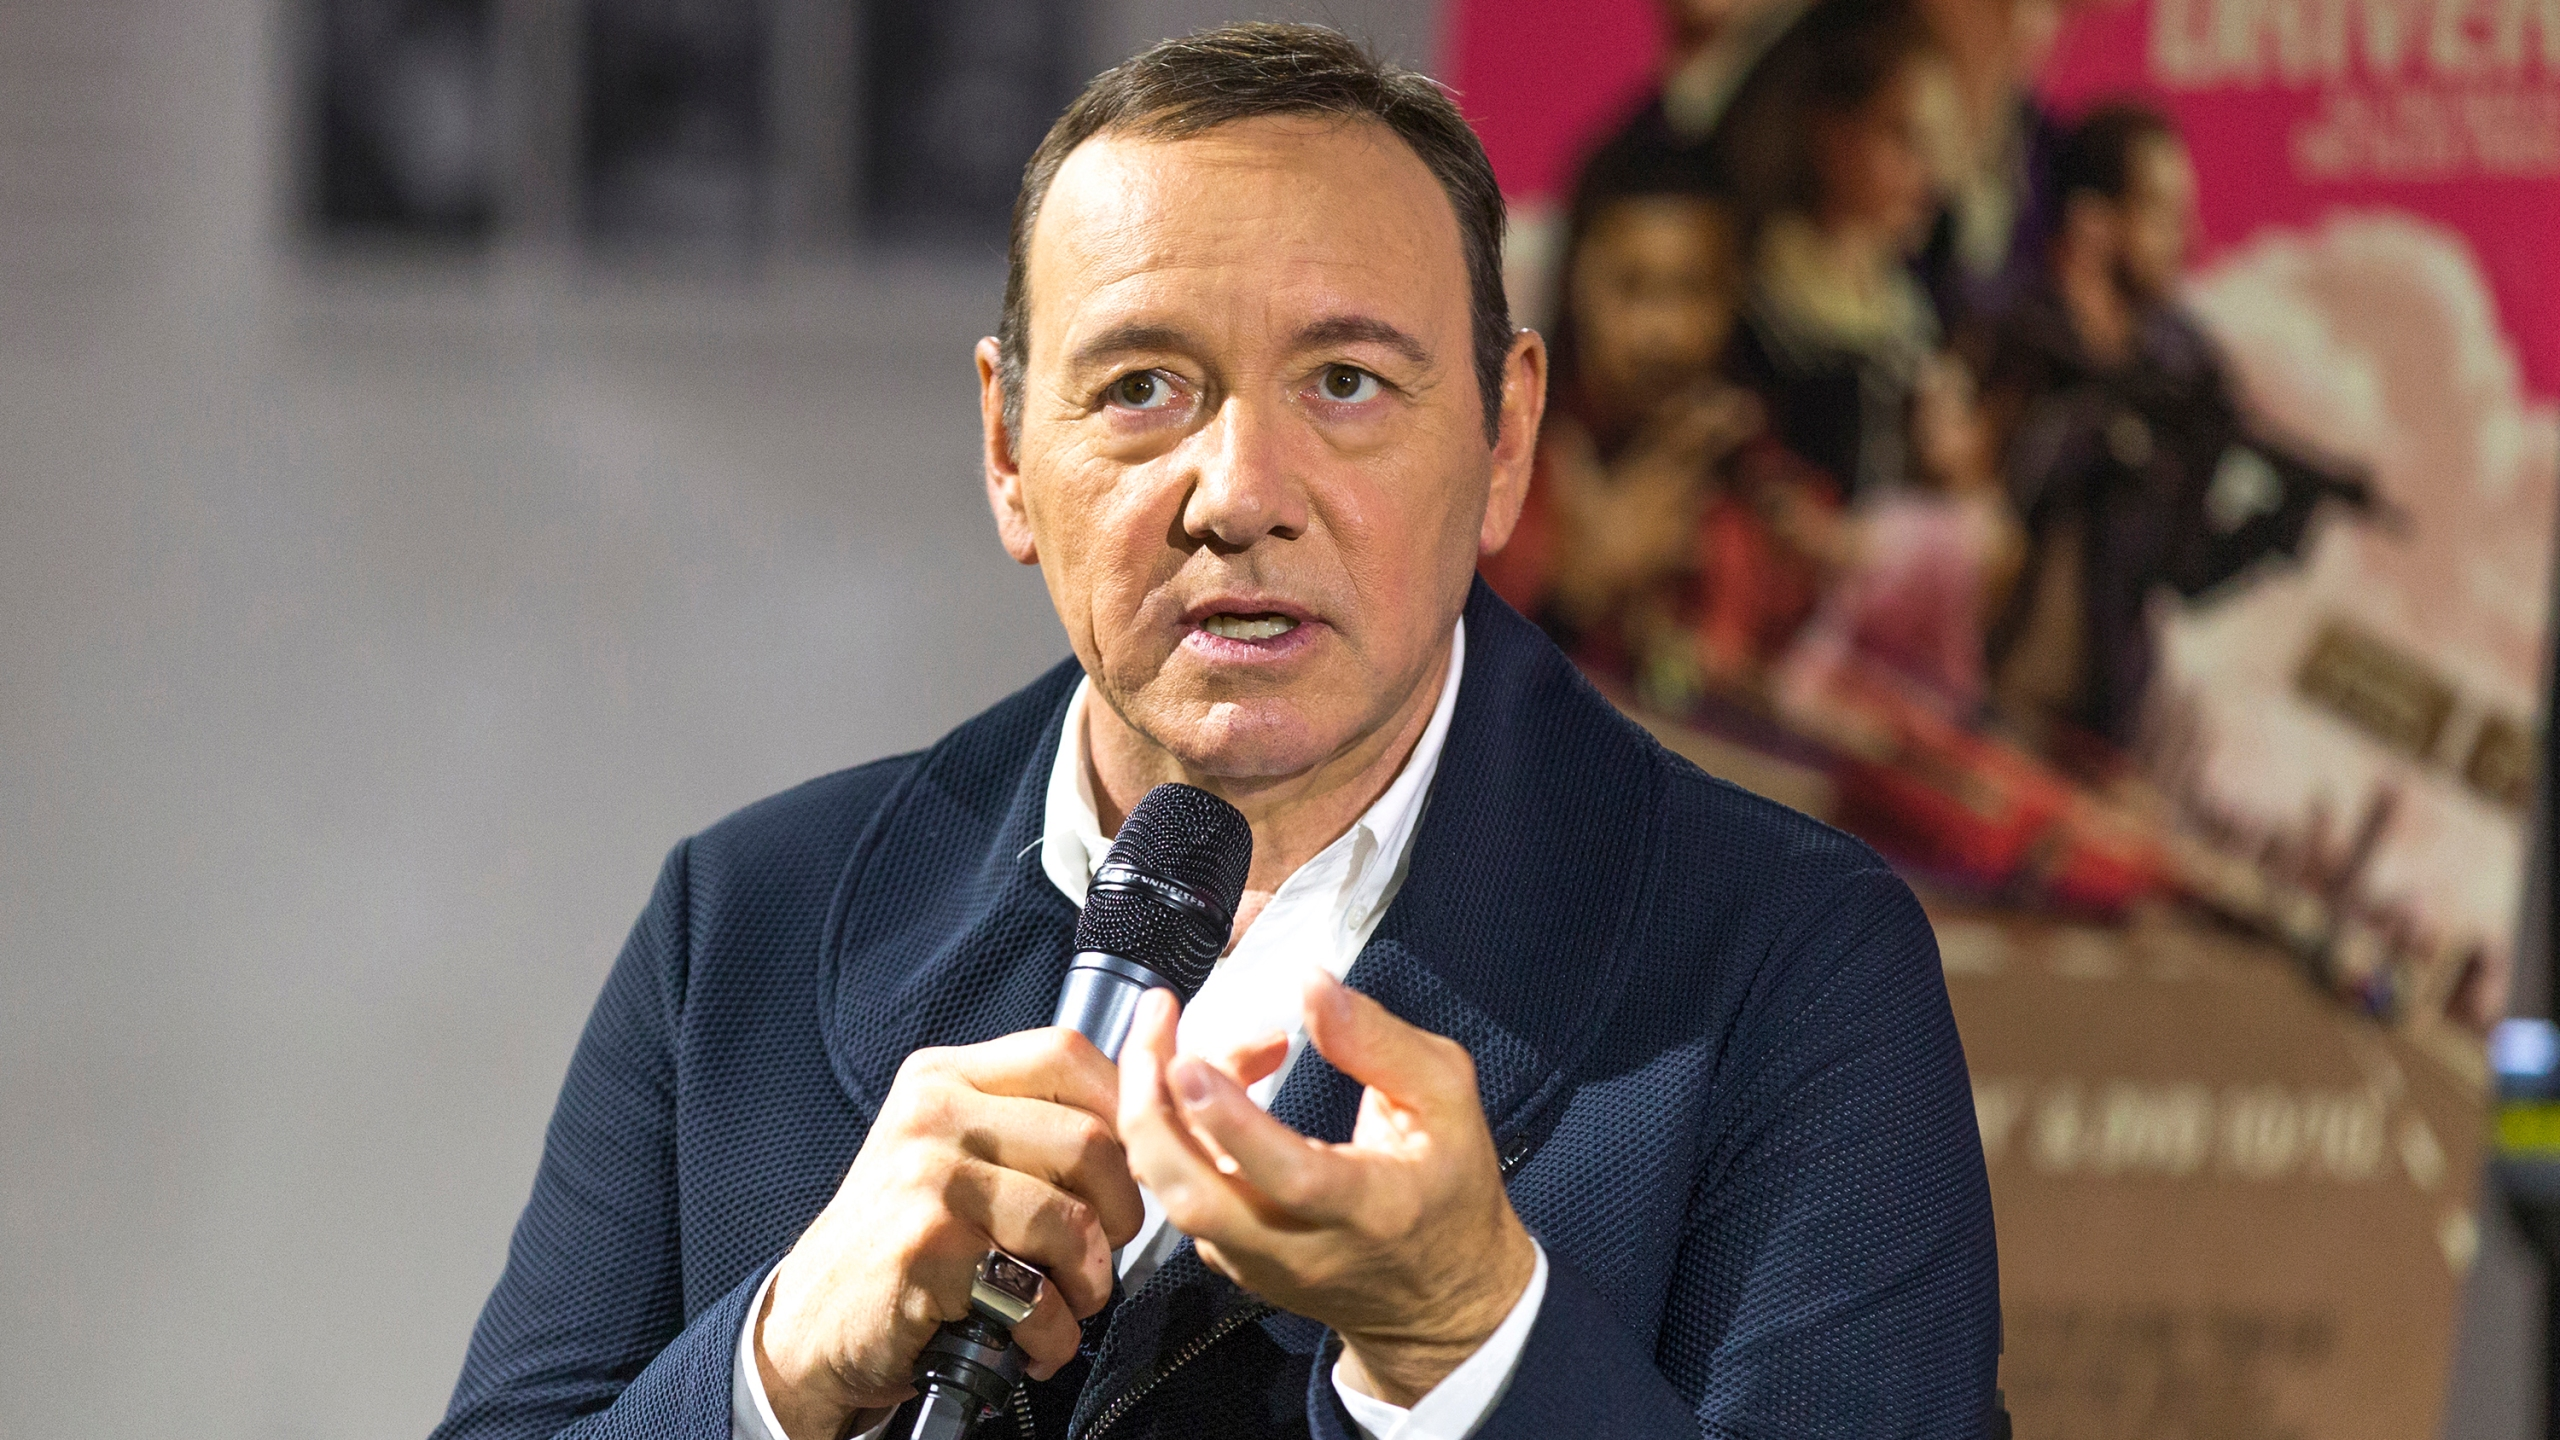 Kevin Spacey talks on stage at Cars, Arts & Beats: A Night Out With 'Baby Driver' at the Petersen Automotive Museum on October 4, 2017 in Los Angeles. (Credit: Rochelle Brodin/Getty Images for Sony Pictures Home Entertainment)